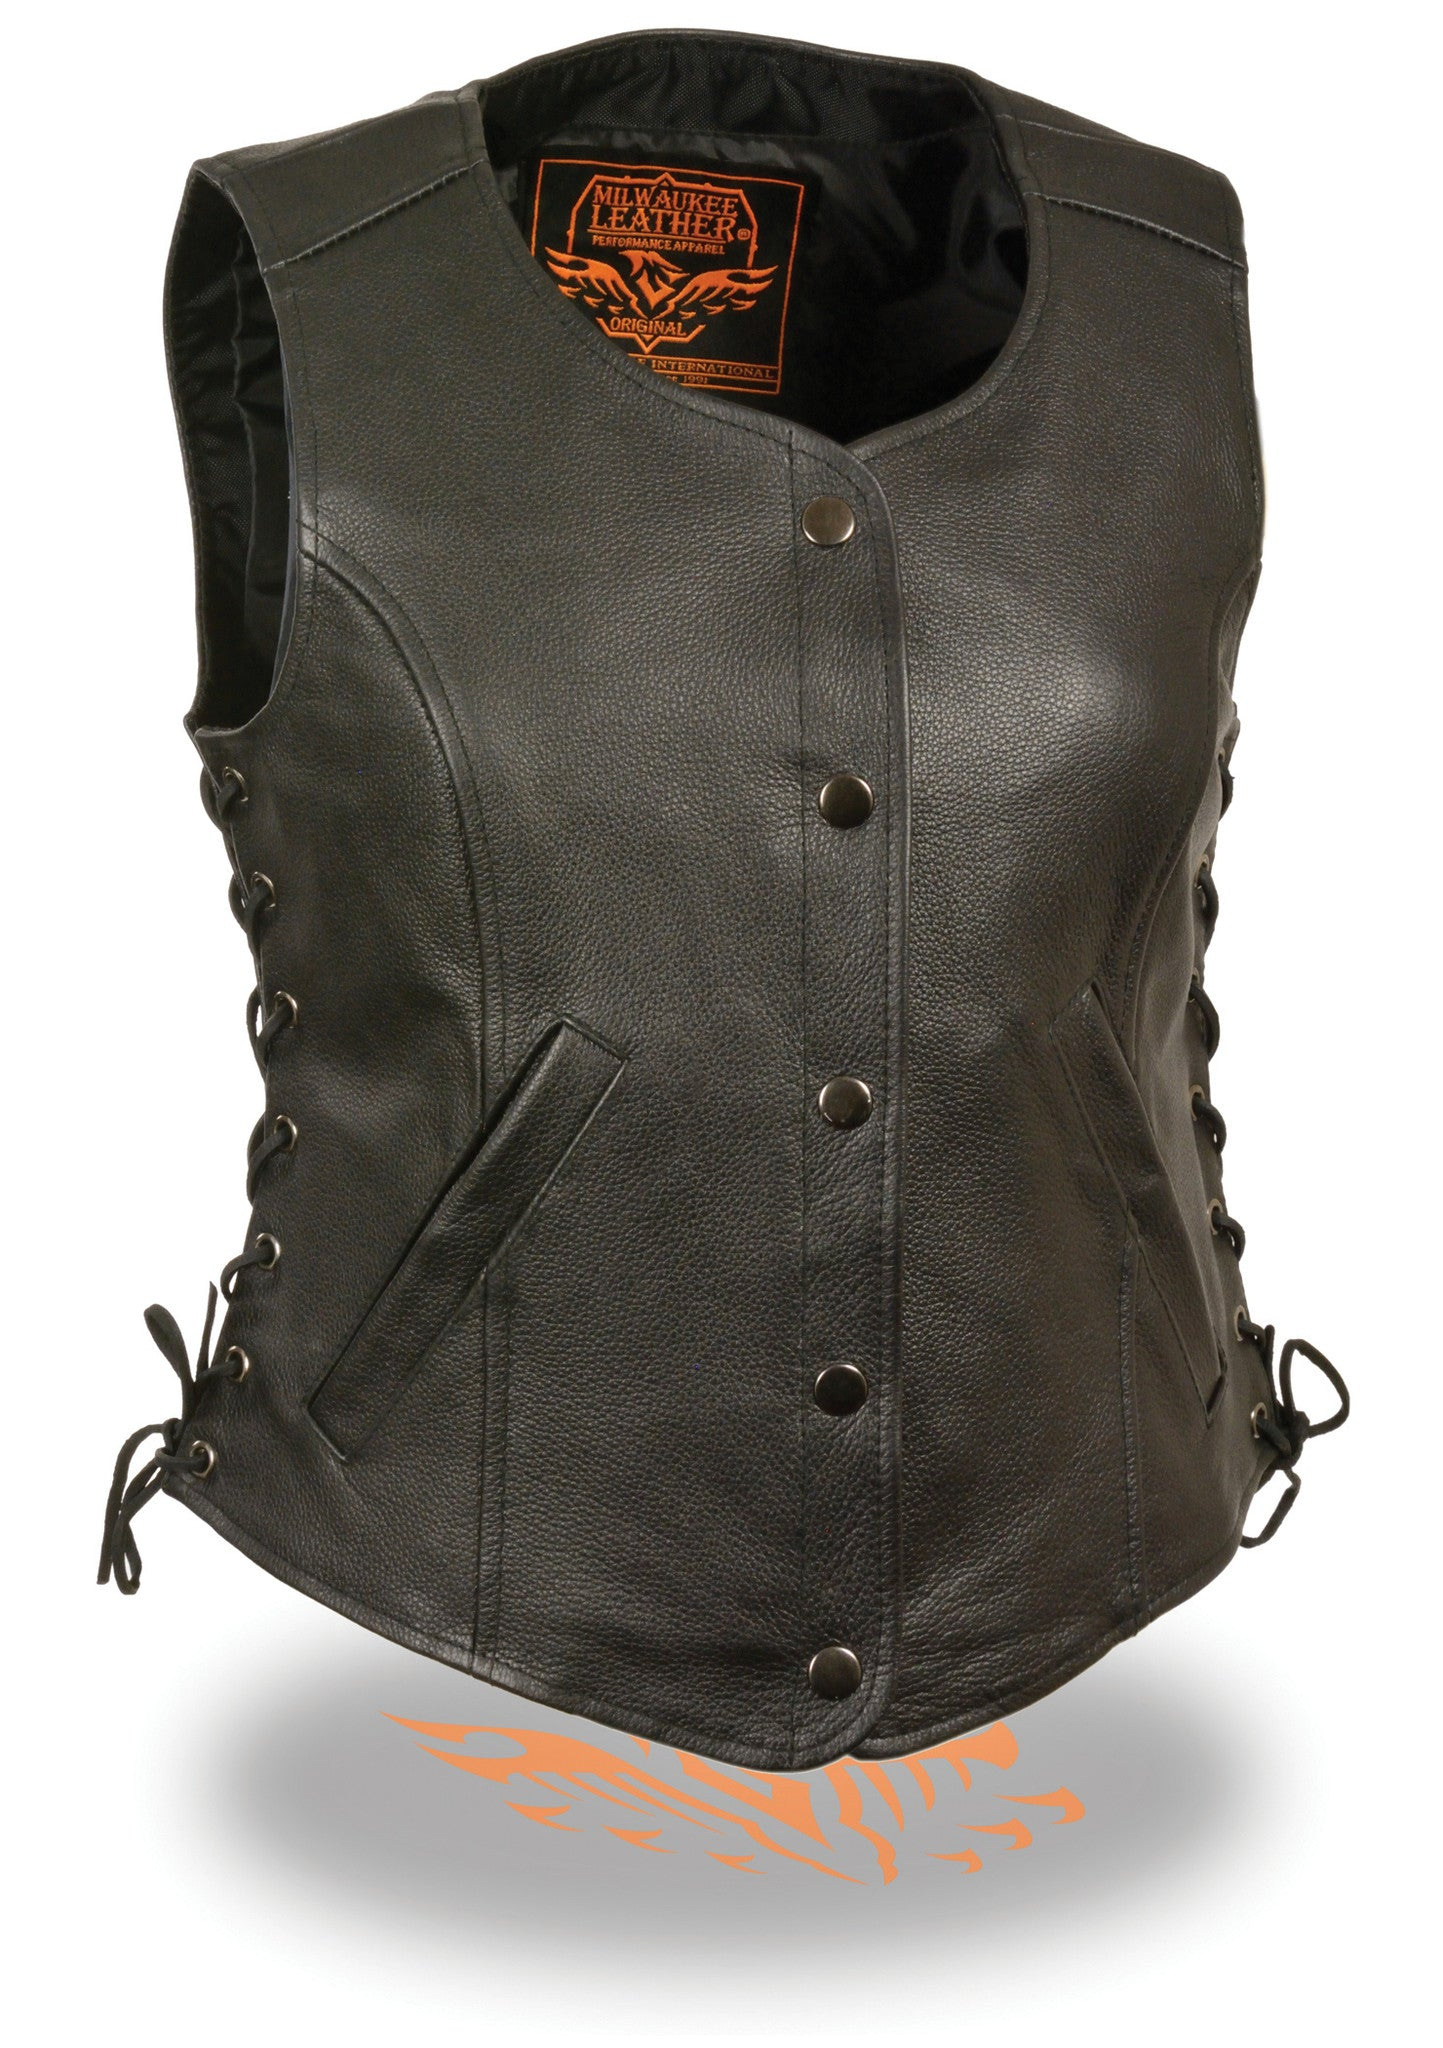 WOMEN'S RIDER 5 SNAPS LEATHER CLASSIC VEST W/ SIDE LACES